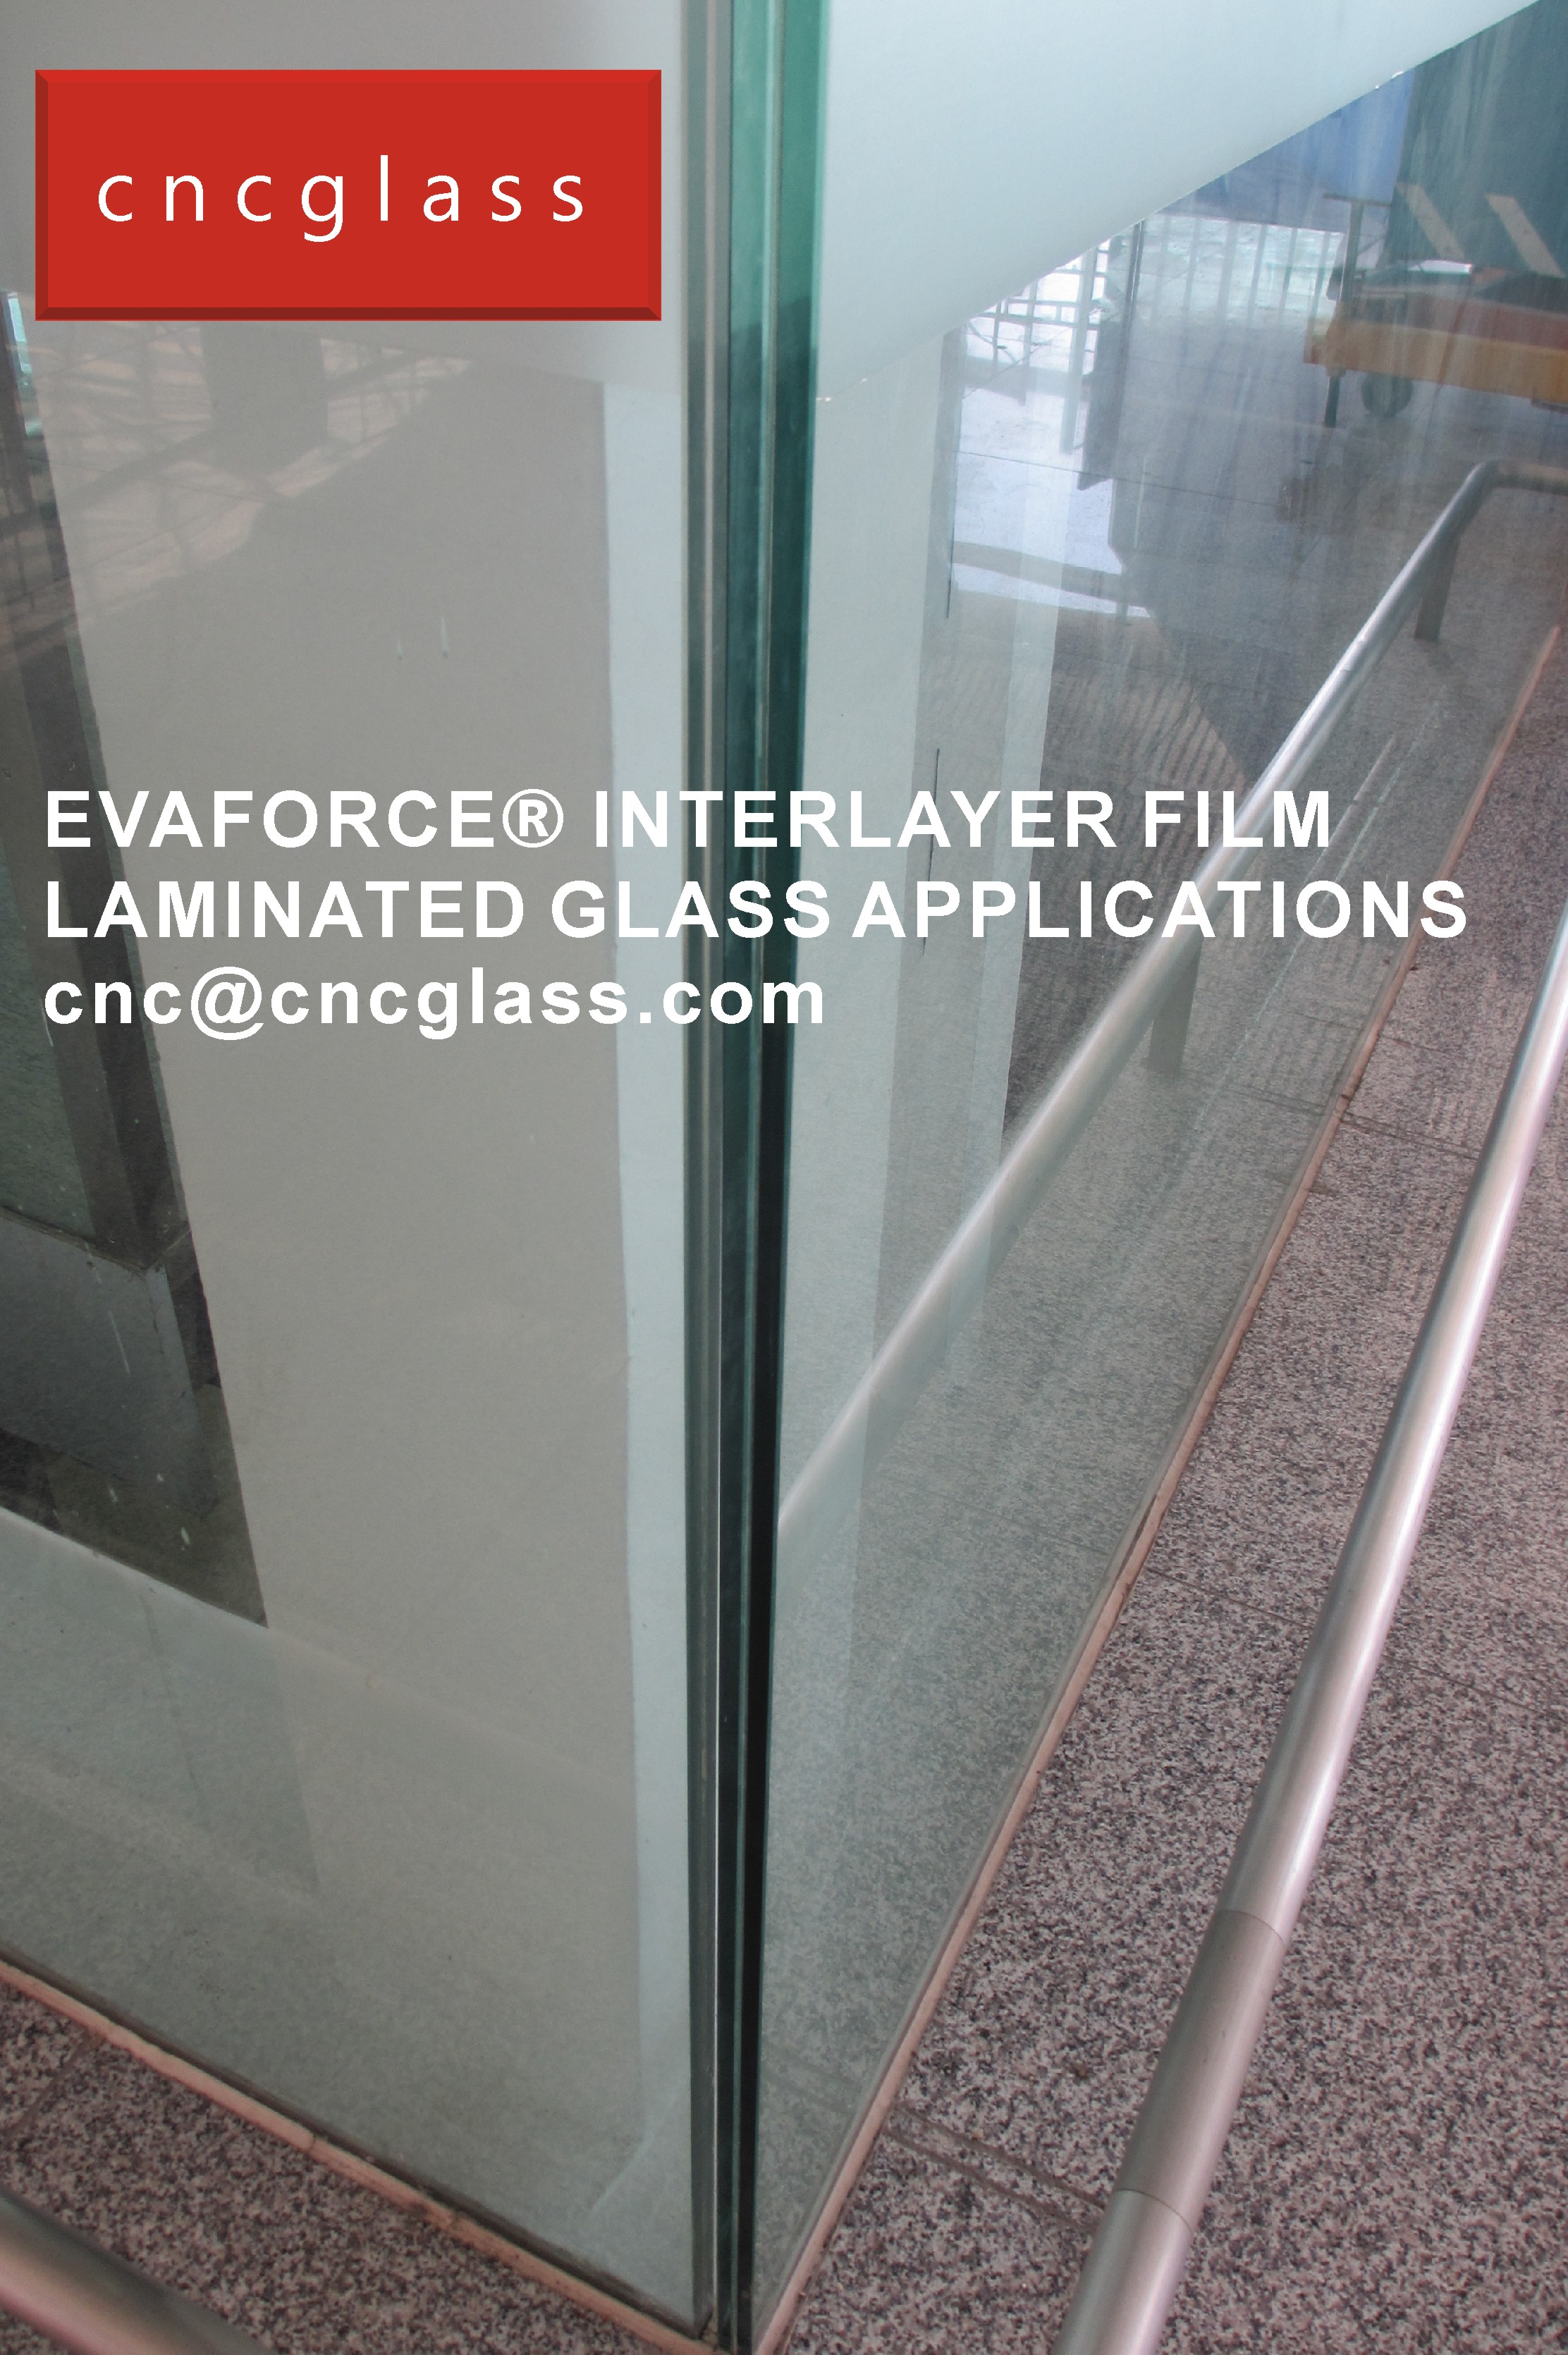 EVAFORCE INTERLAYER FILM LAMINATED GLASS APPLICATIONS (12)